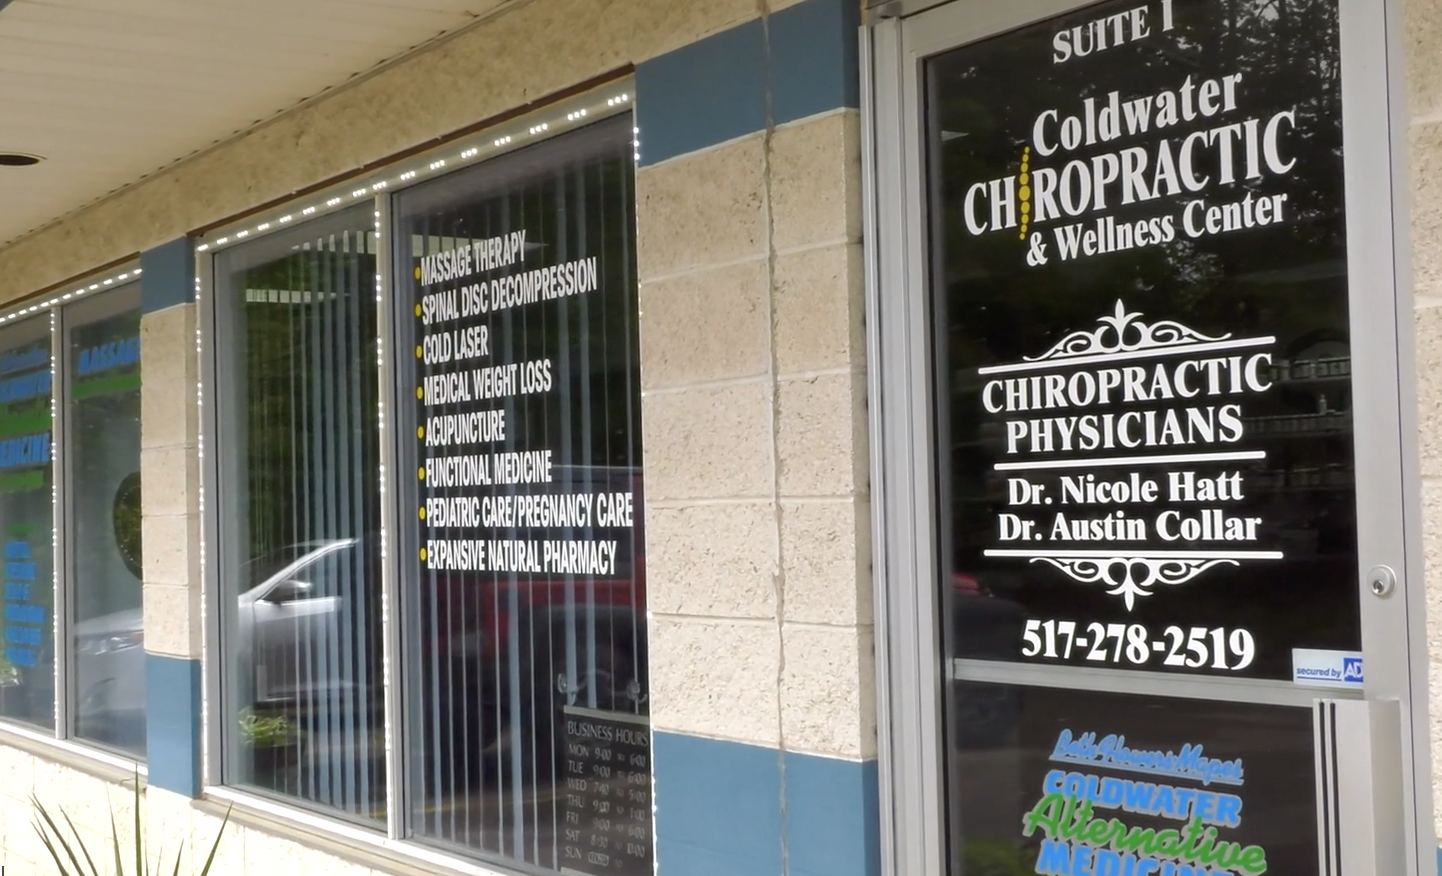 Coldwater Chiropractic and Wellness Center